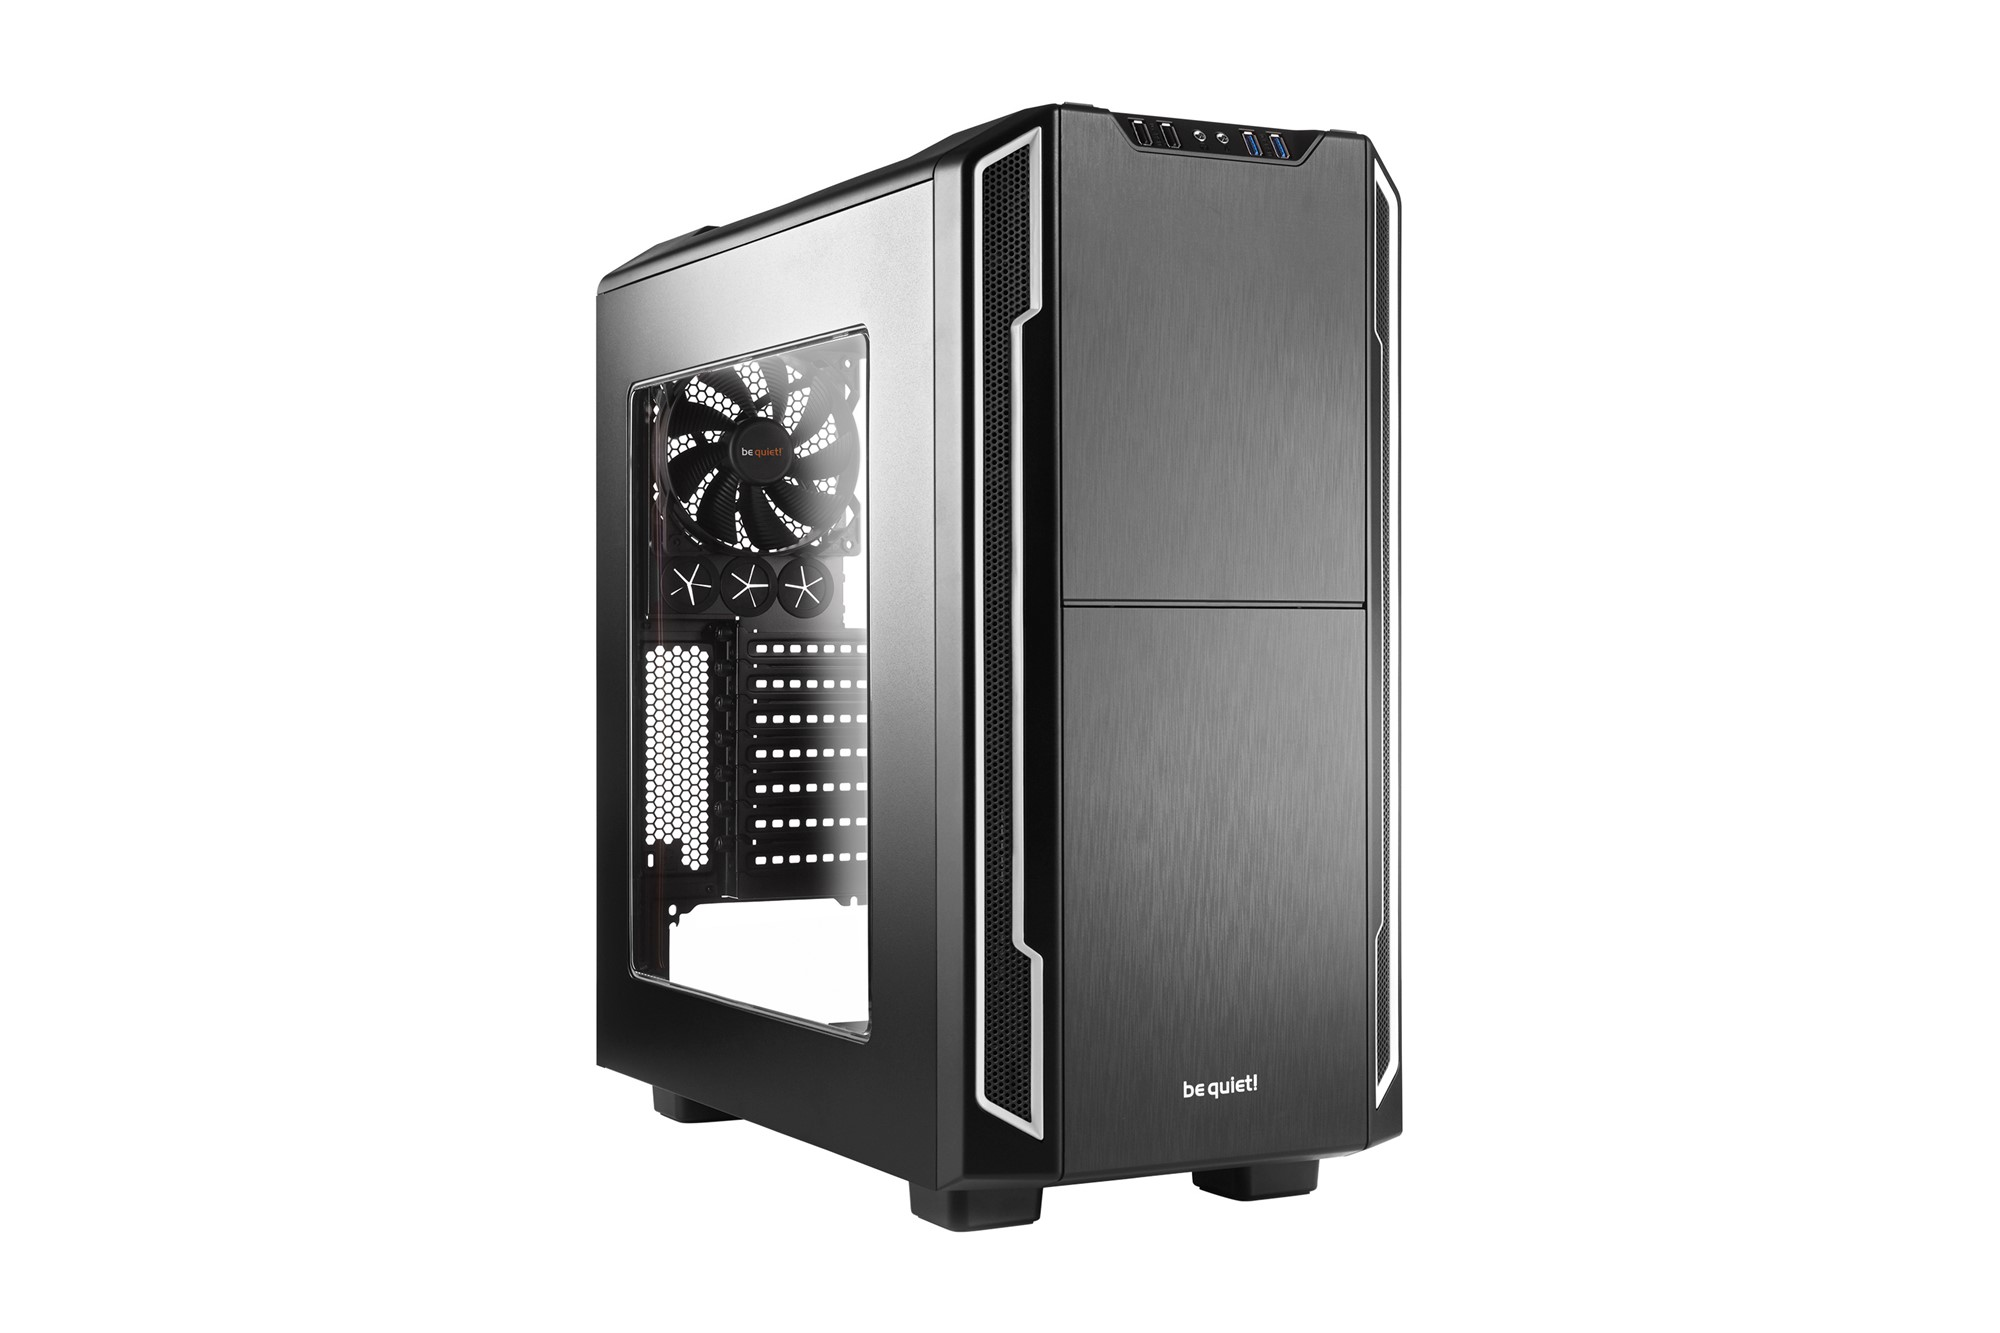 BE QUIET! BGW07 SILENT BASE 600 DESKTOP BLACK,SILVER COMPUTER CASE